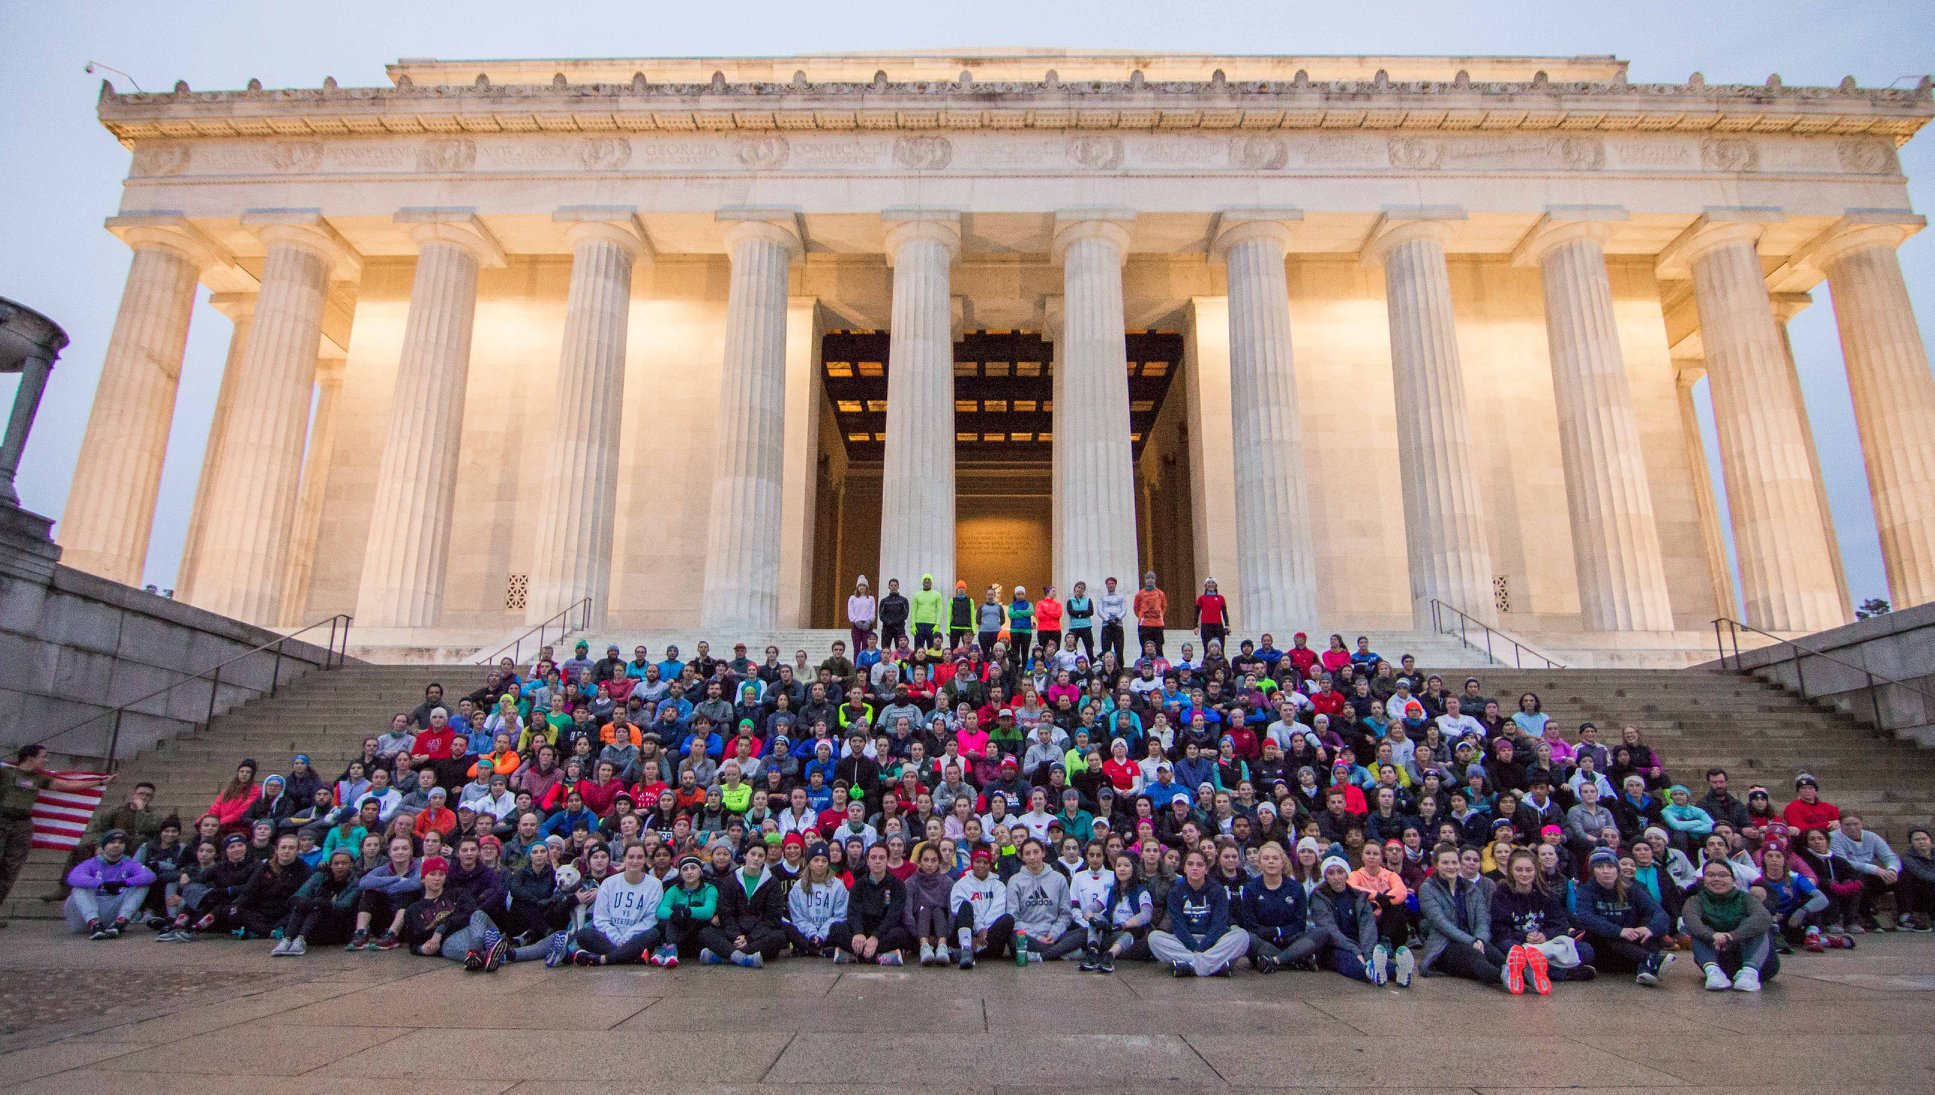 An image of a group of runners sitting on the Lincoln Memorial steps.